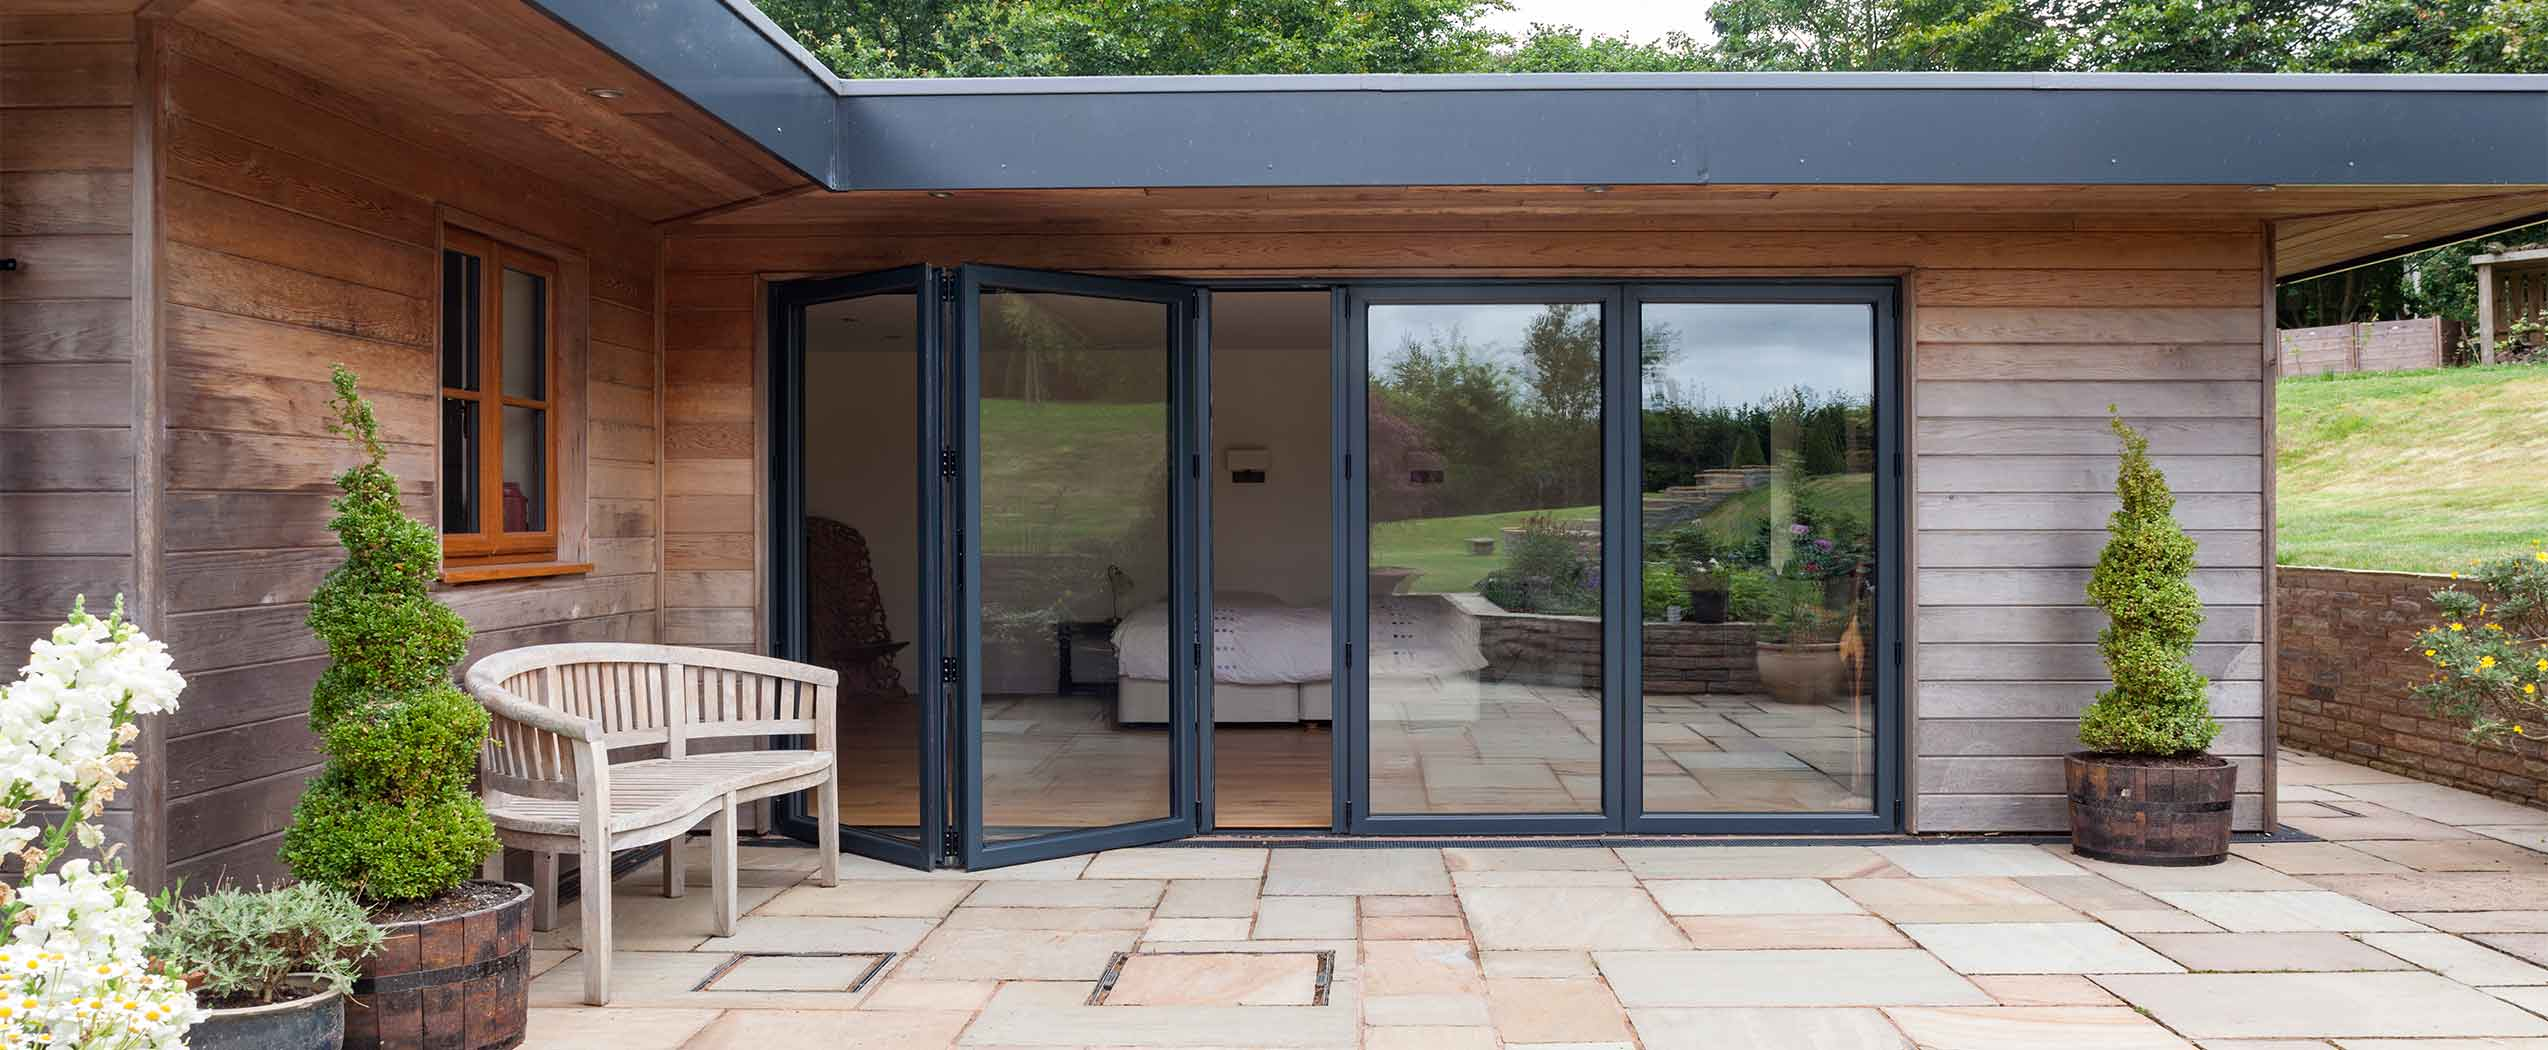 4 panel bifold doors in aluminium